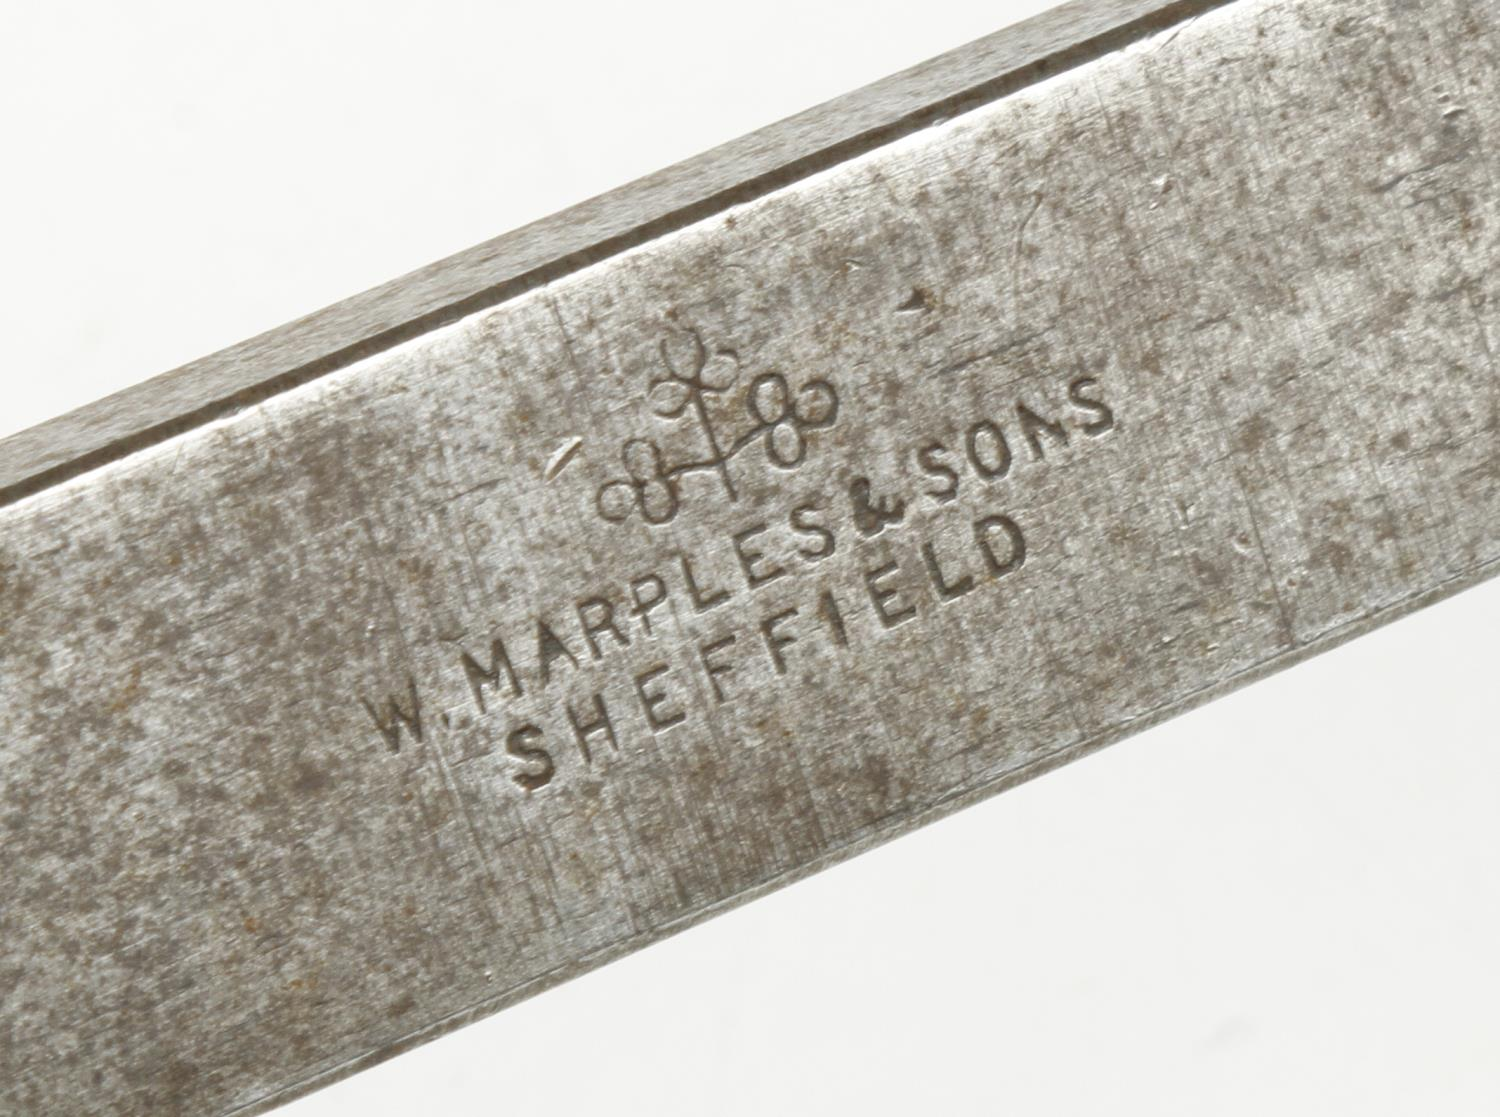 """A 1/2"""" mortice lock chisel by MARPLES G+ - Image 2 of 2"""